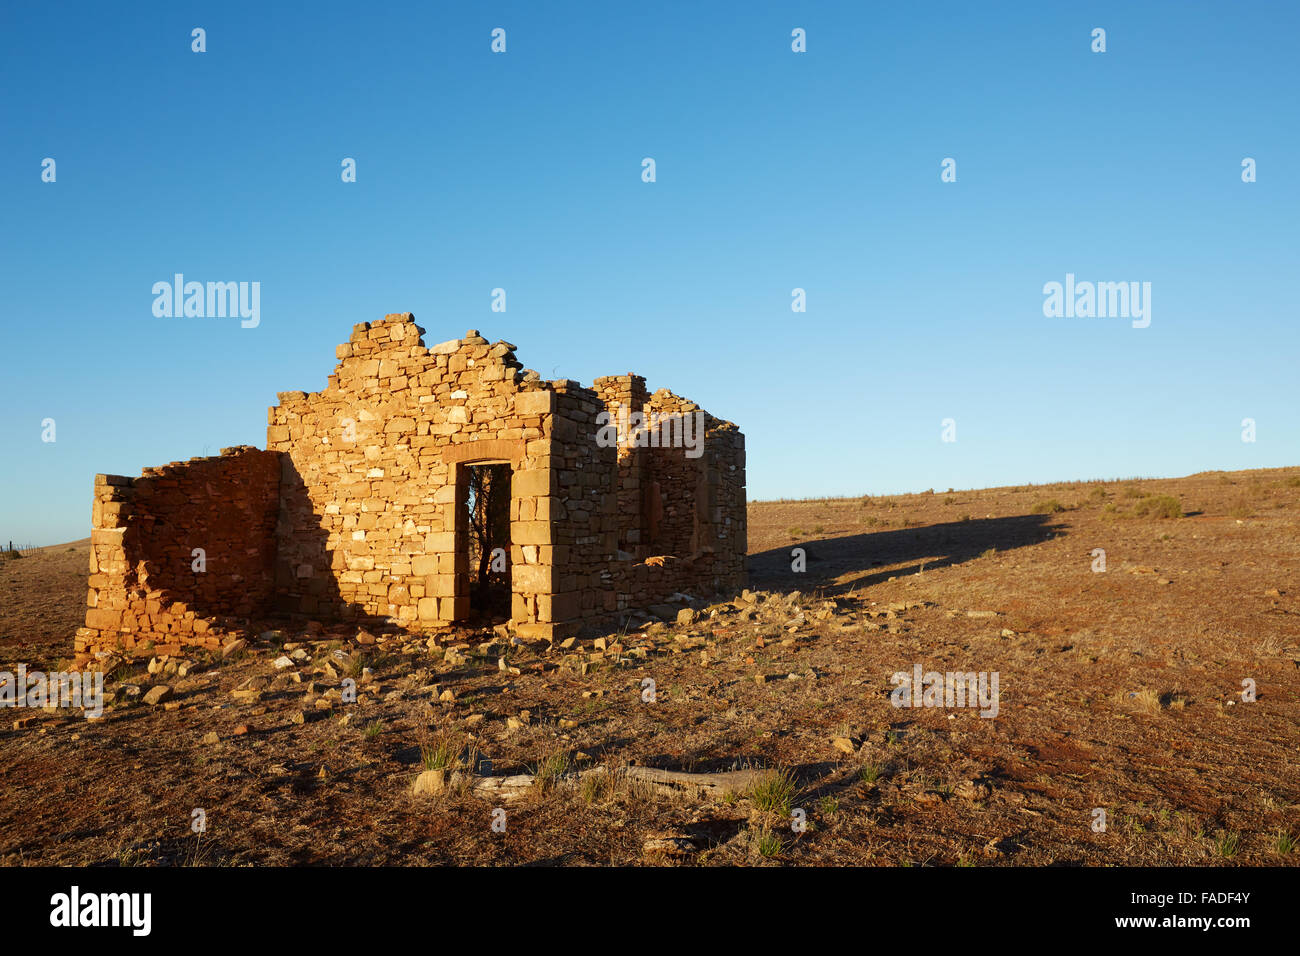 Remains of an old stone building near Peterborough, South Australia. - Stock Image